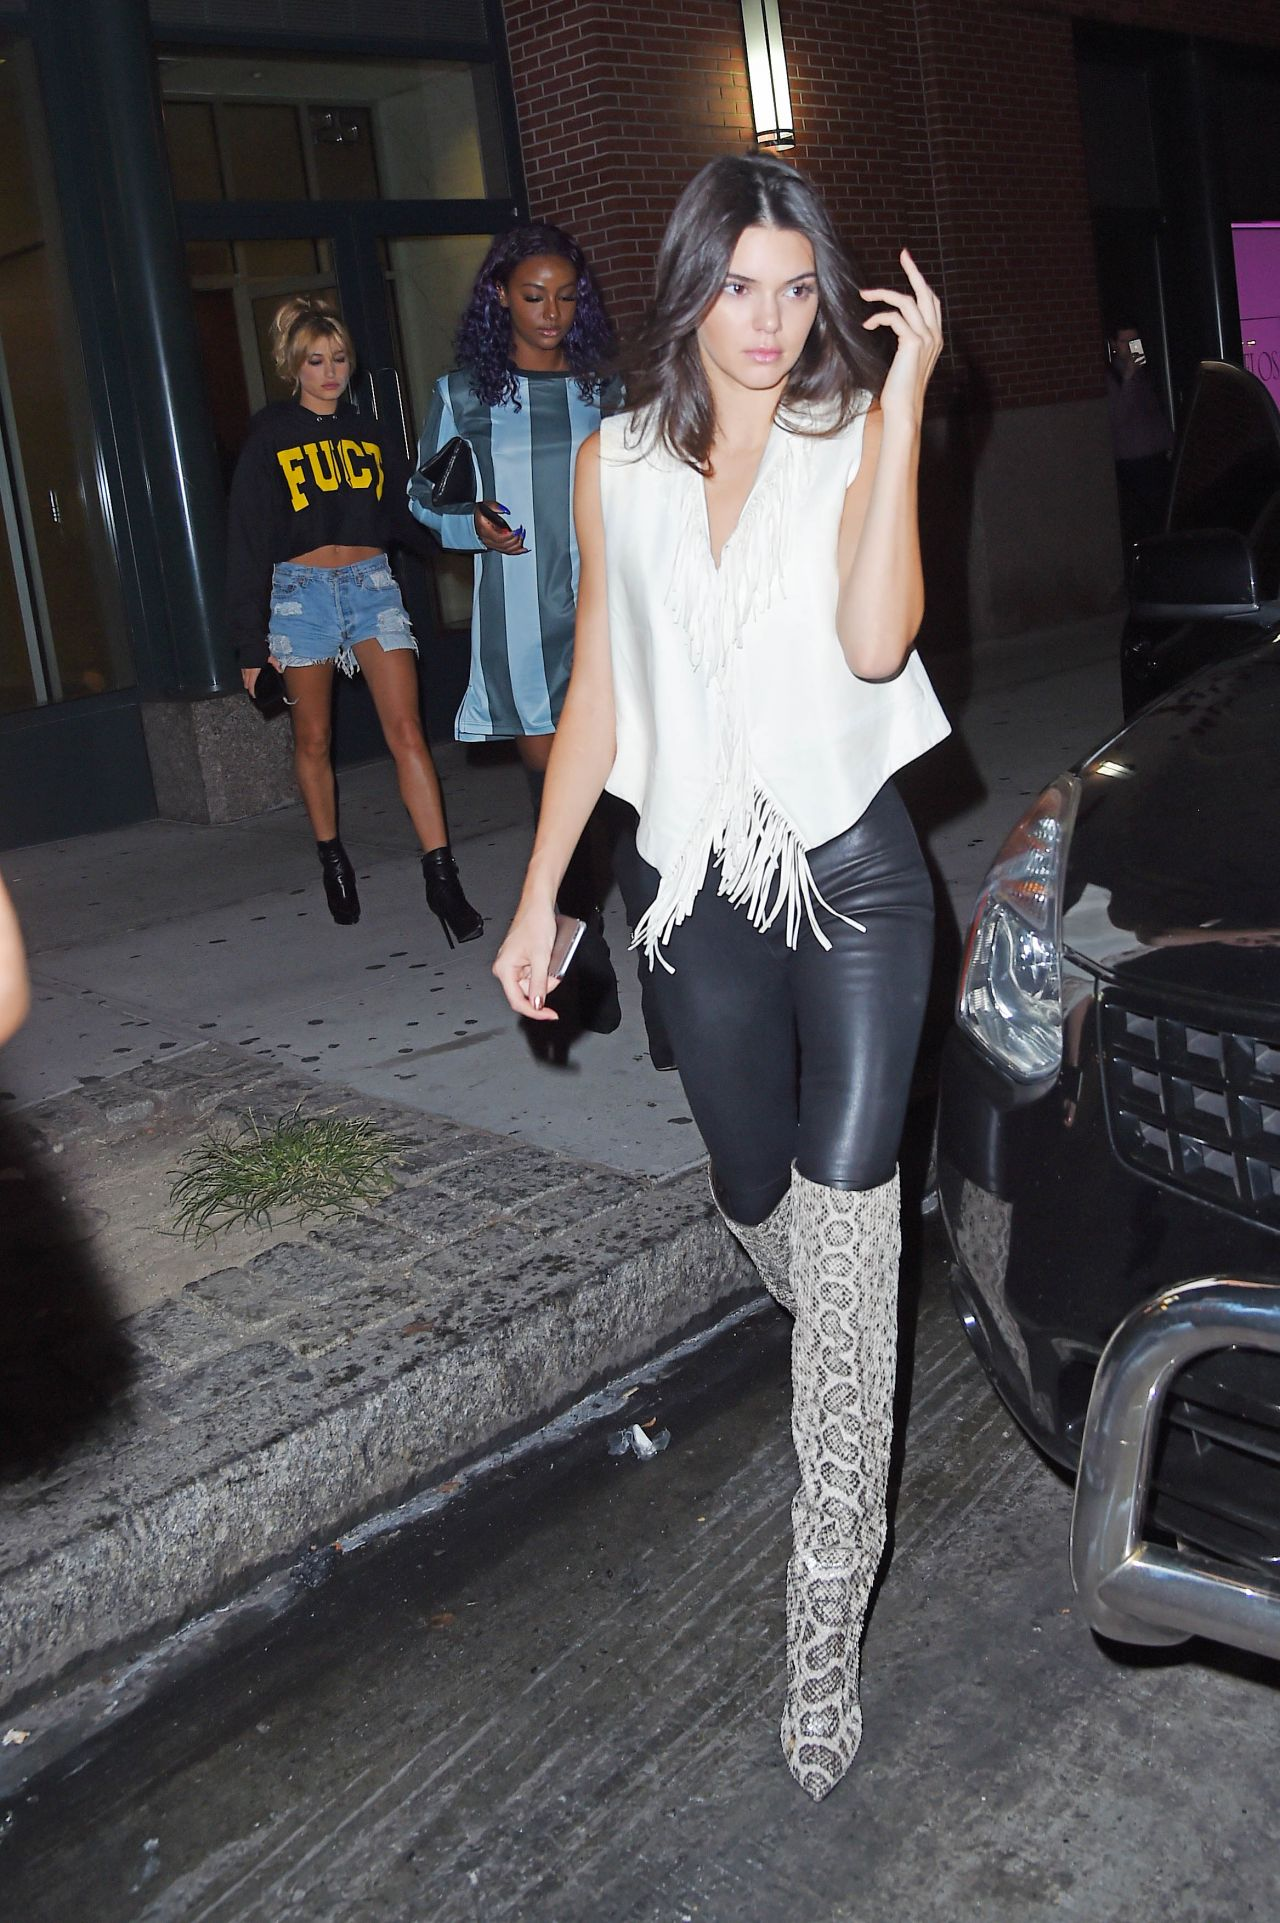 kendall-jenner-travis-scott-rodeo-listening-party-in-new-york-city_1